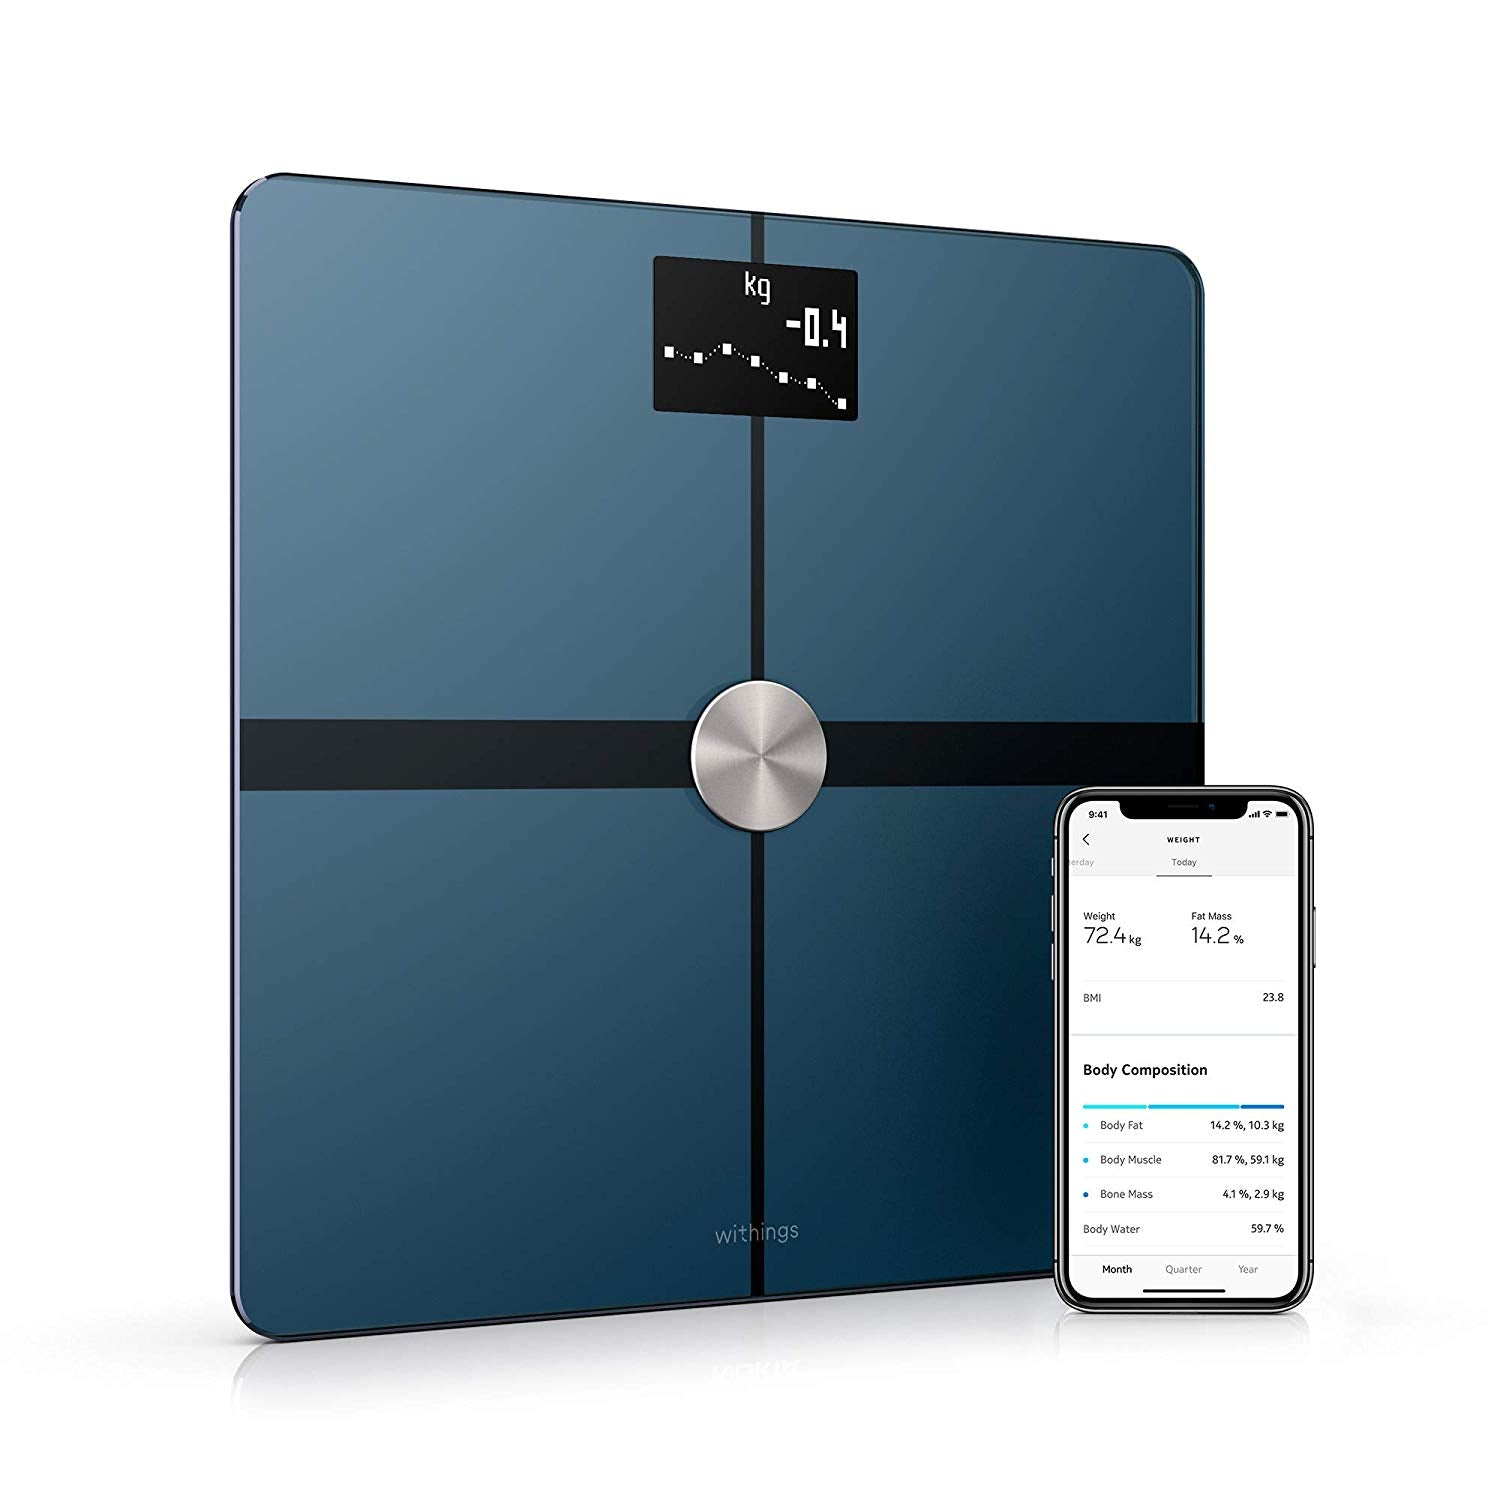 Withings Nokia Body+ Smart Body Composition Wi-Fi Digital Scale Black (Like New)